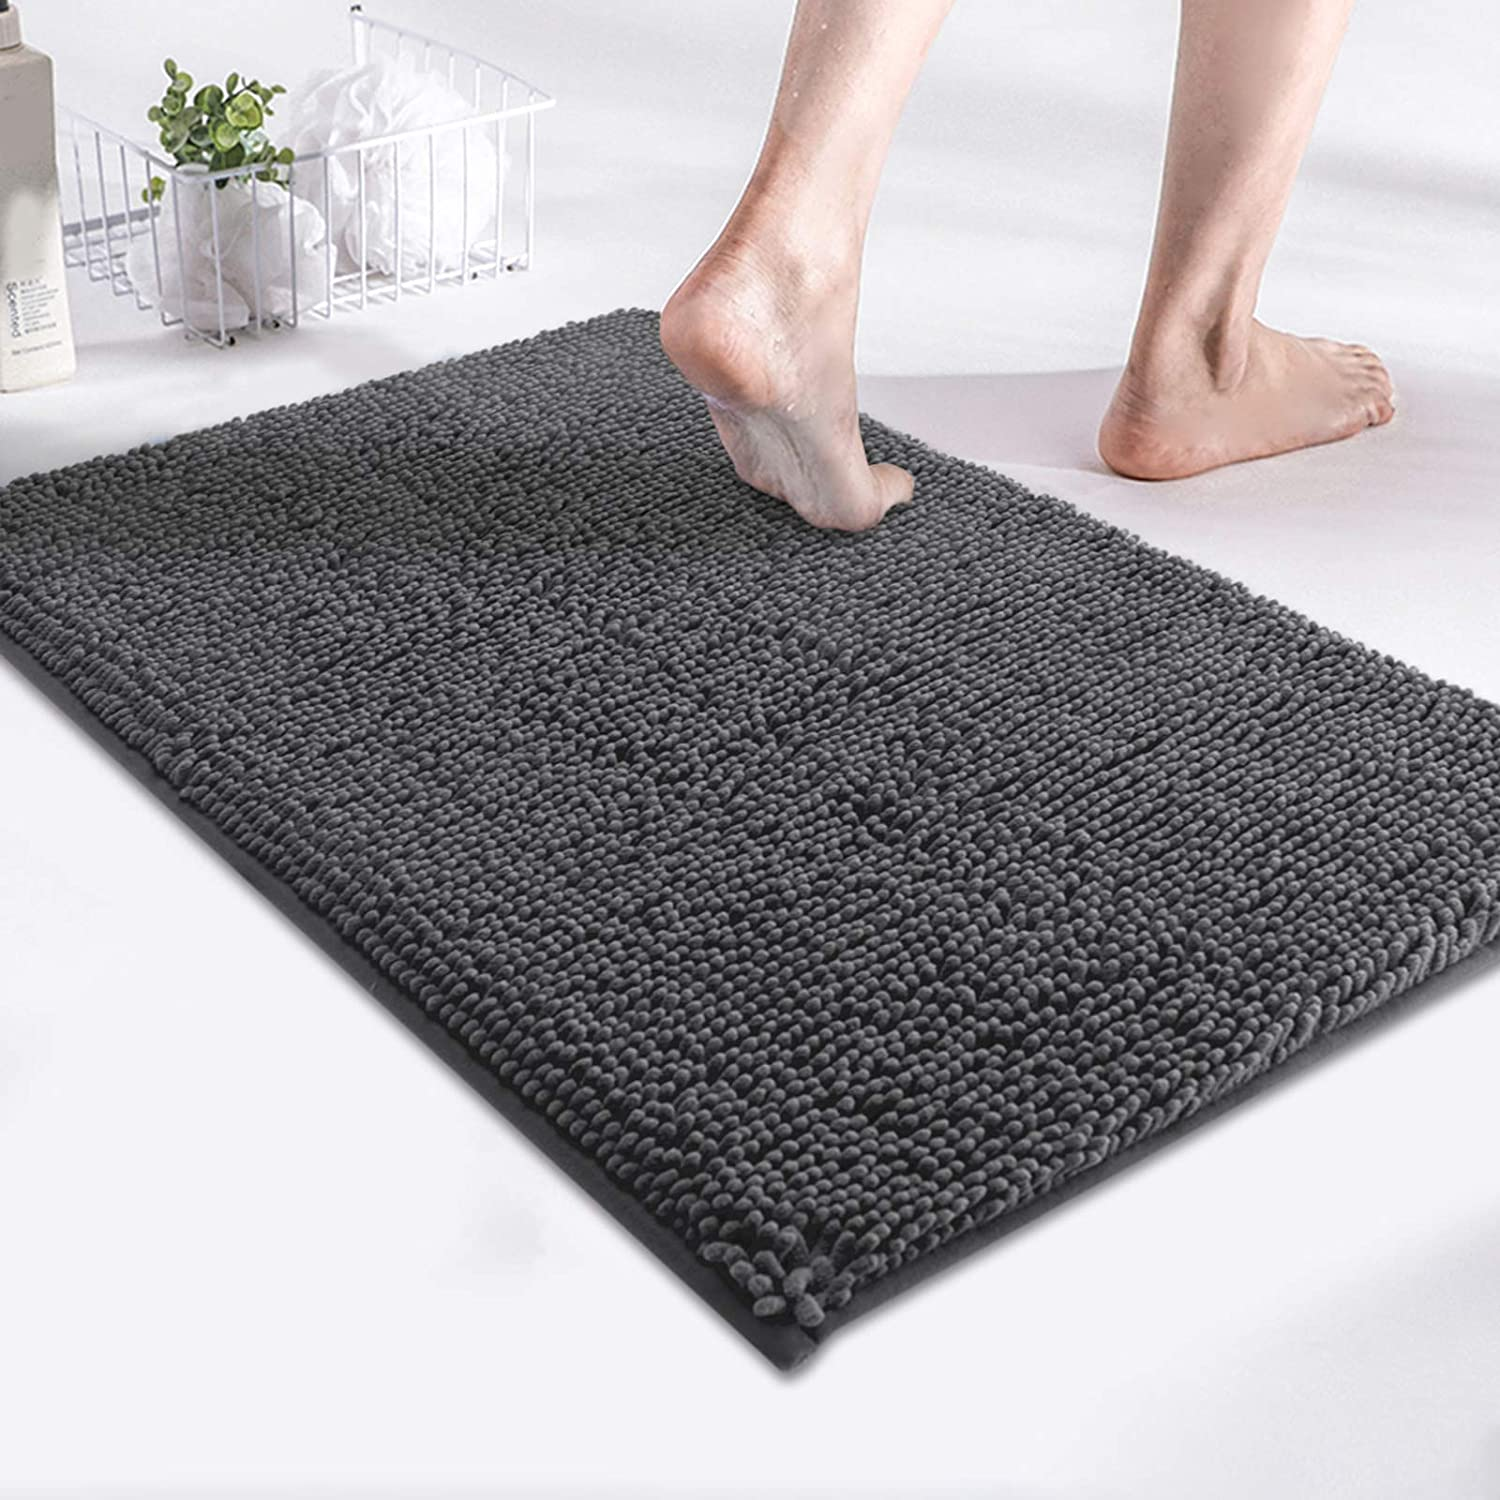 MAYSHINE Luxury Non Slip Chenille Bath Mats for Bathroom Rugs Extra Soft, Absorbent, Shaggy Microfiber, Machine-Washable, Perfect for Door Mat (17x24 Inches, Charcoal Gray)